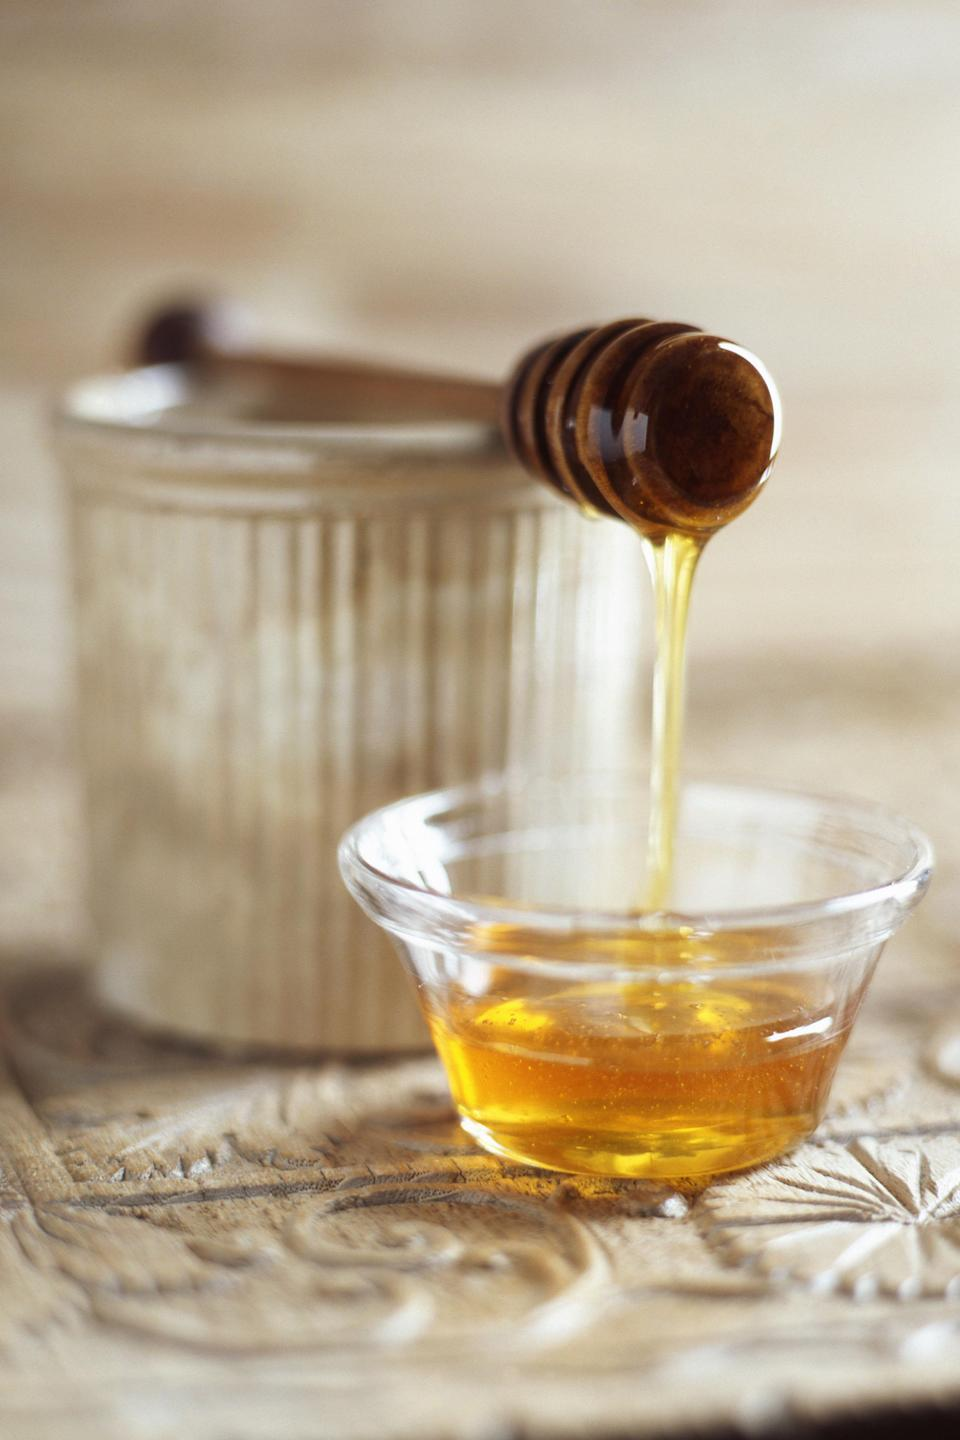 """<p>This sweet substance should be a <a href=""""http://www.goodhousekeeping.com/health-products/g3163/medicine-cabinet-seal-holders/"""" rel=""""nofollow noopener"""" target=""""_blank"""" data-ylk=""""slk:first-aid kit"""" class=""""link rapid-noclick-resp"""">first-aid kit</a><a href=""""http://www.goodhousekeeping.com/health-products/g3163/medicine-cabinet-seal-holders/"""" rel=""""nofollow noopener"""" target=""""_blank"""" data-ylk=""""slk:staple"""" class=""""link rapid-noclick-resp""""> staple</a>, especially when it comes to ailments like abrasion, bed sores and cracked nipples. Because of its antibacterial properties, honey helps clean wounds, reduce inflammation and promote new tissue growth, according to a <a href=""""https://www.ncbi.nlm.nih.gov/pubmed/28291965"""" rel=""""nofollow noopener"""" target=""""_blank"""" data-ylk=""""slk:2017 study"""" class=""""link rapid-noclick-resp"""">2017 study</a>. Simply put enough honey on a bandage to cover the affected area (researchers found this to be more effective than putting it on the wound itself) and apply.</p>"""